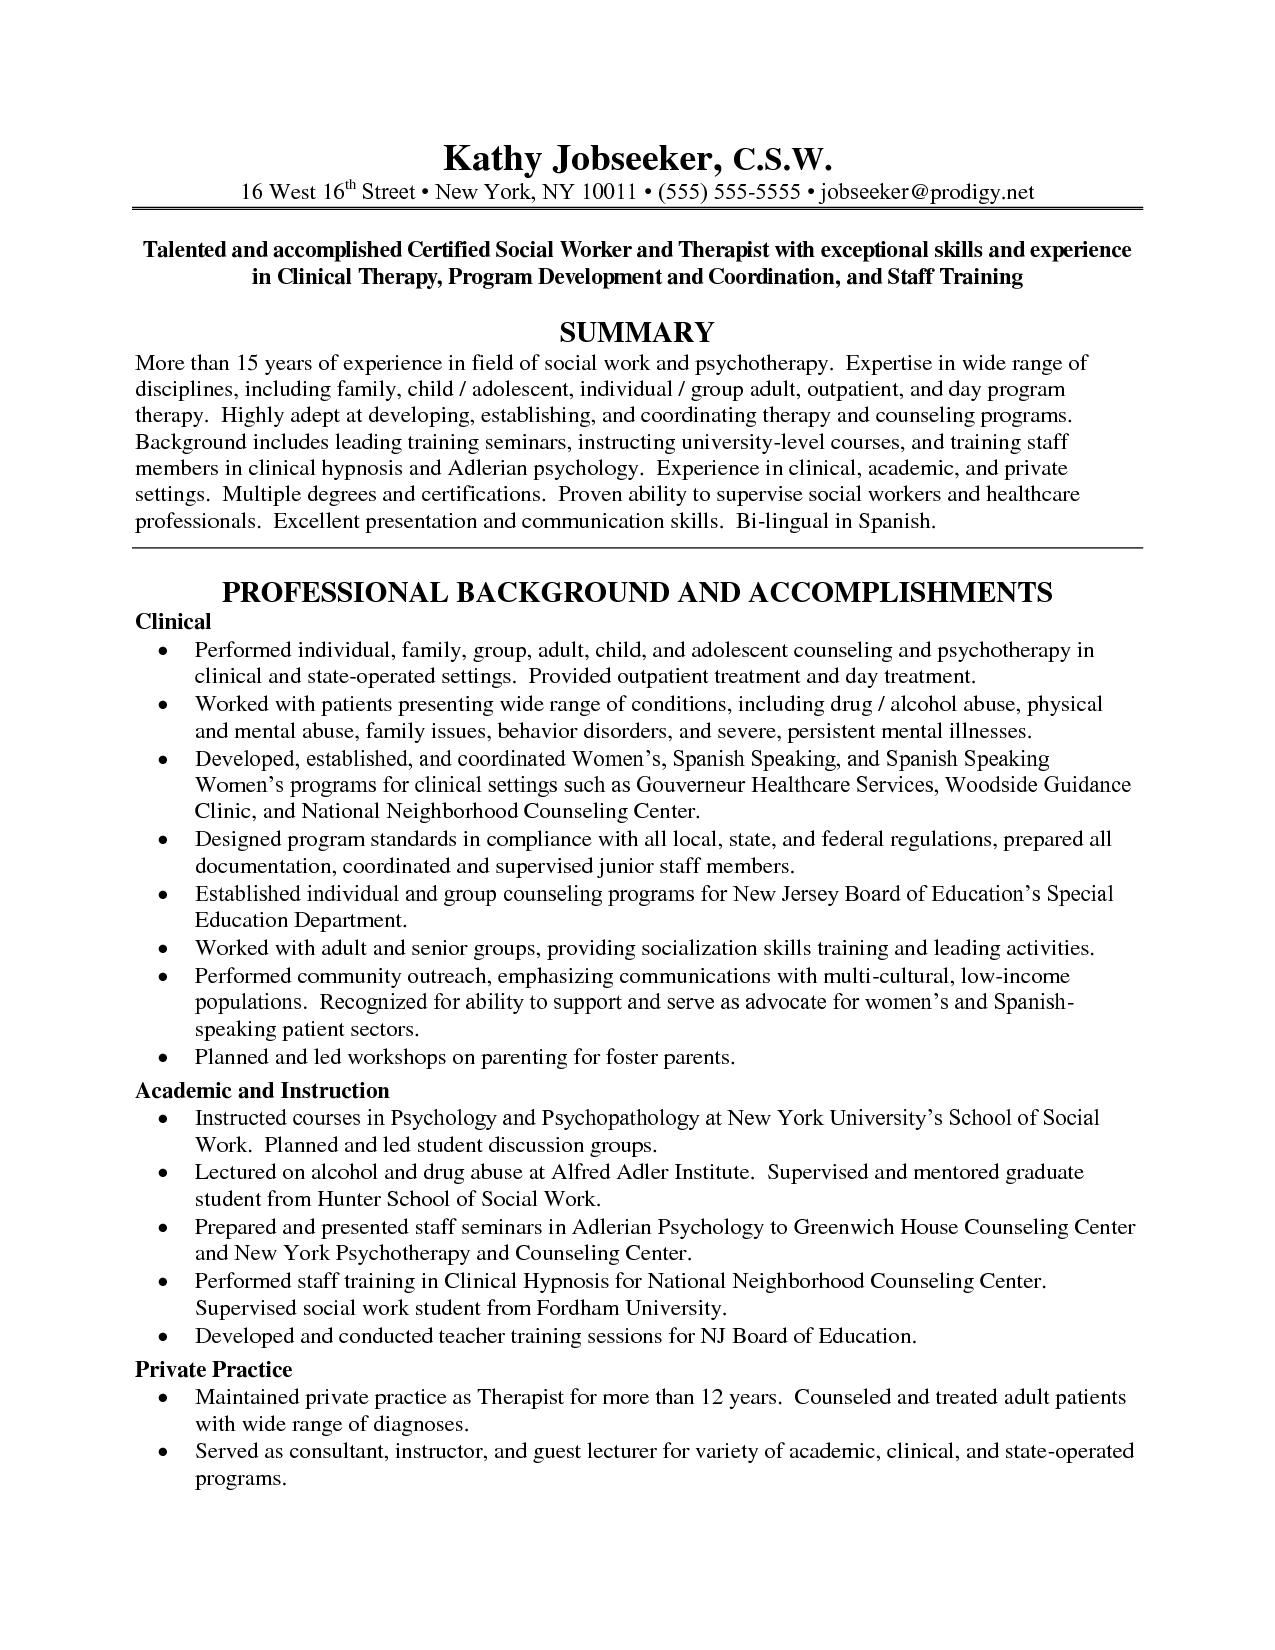 social work resume examples social work resume with license social work resume - Social Worker Resume Template